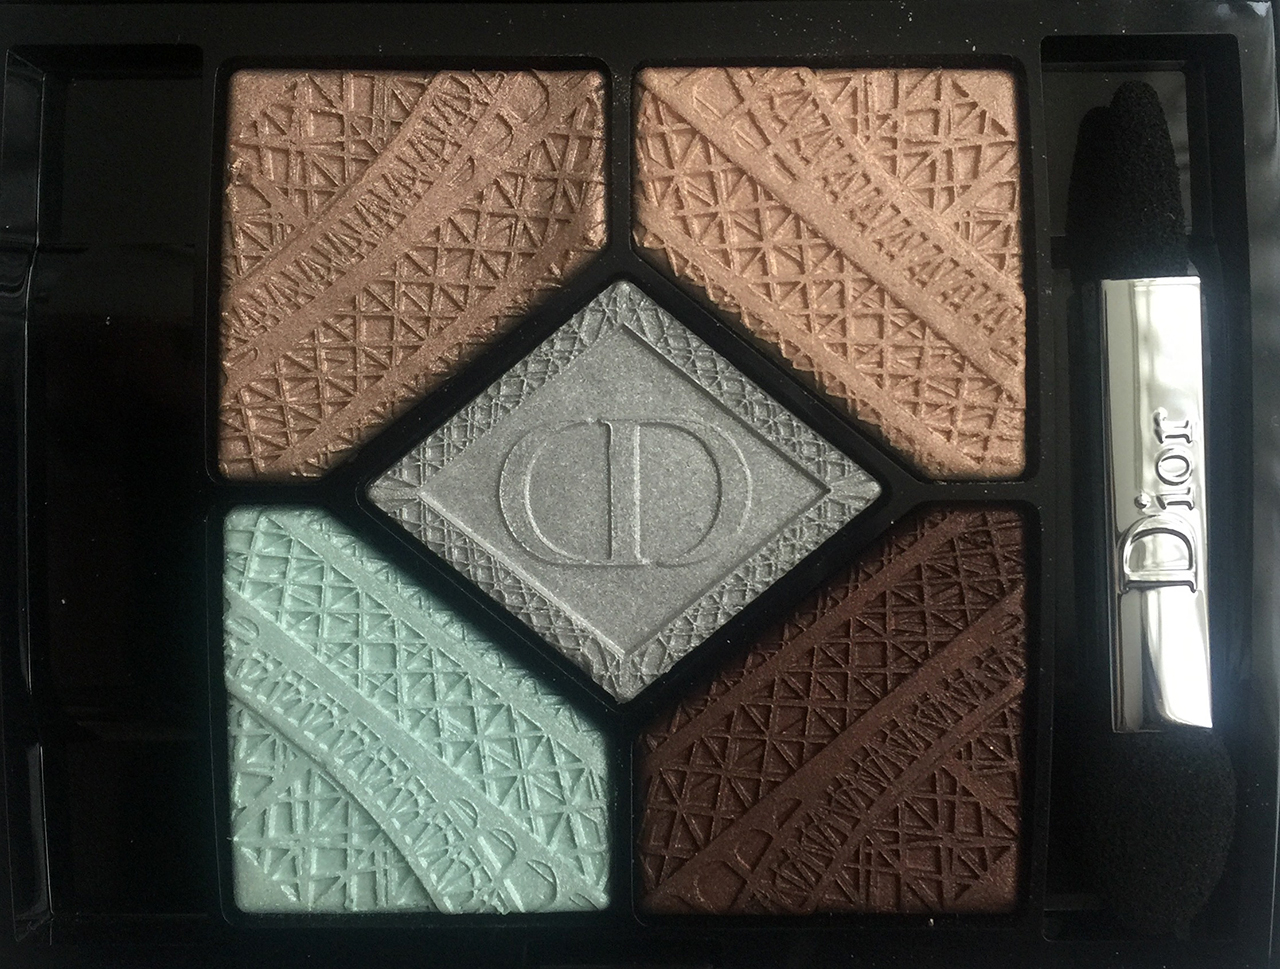 Dior Parisian Sky 5 Couleurs Palette from Fall 2016 Skyline Collection